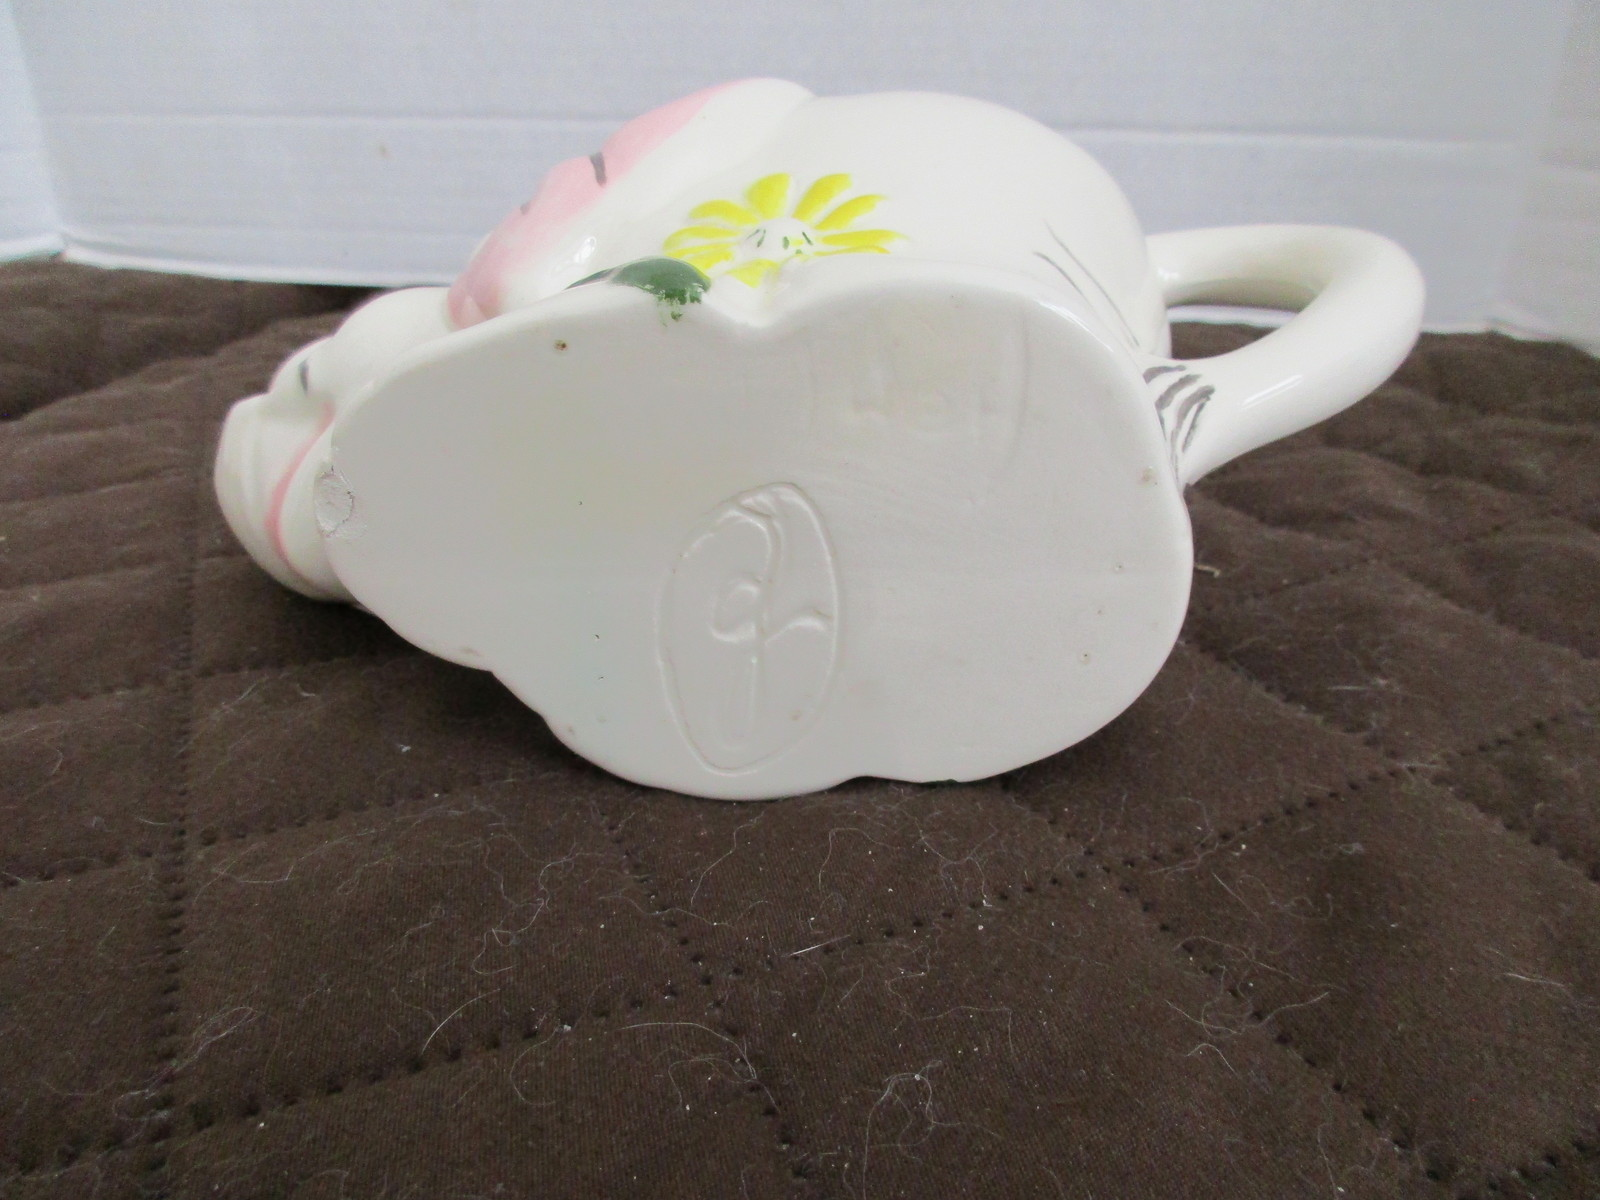 ADORABLE ELEPHANT MILK PITCHER